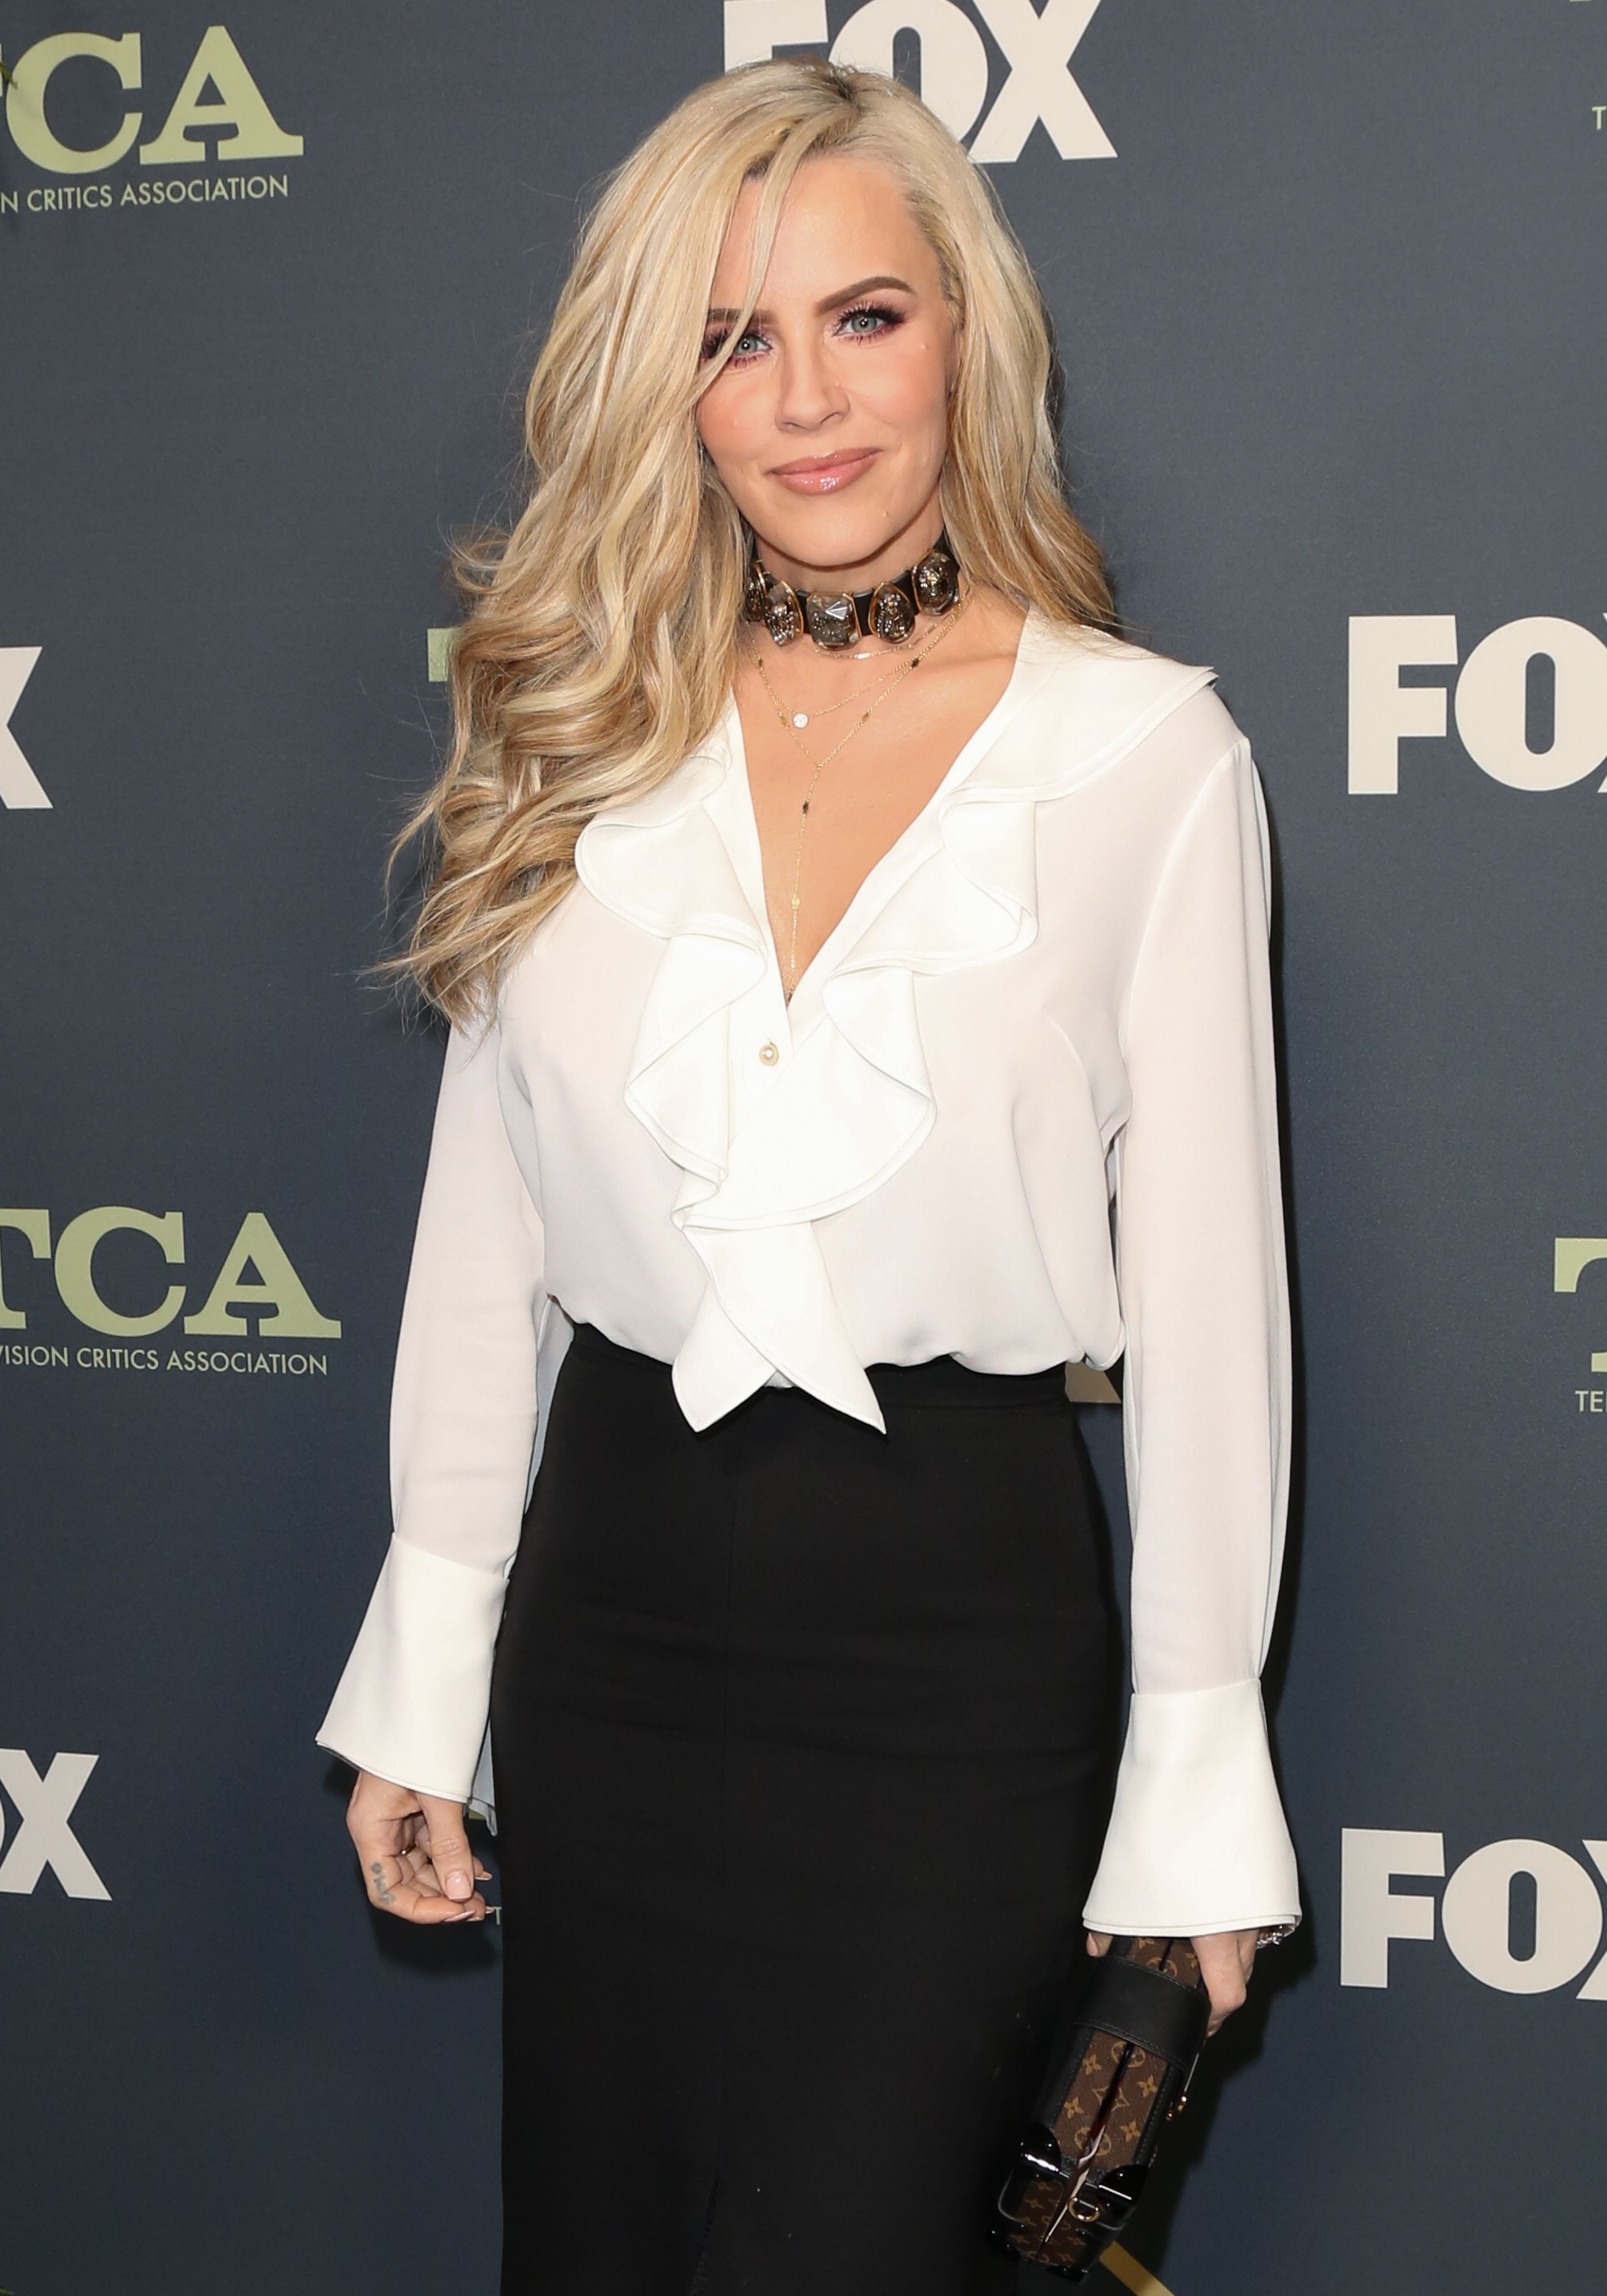 Jenny McCarthy poses on the red carpet